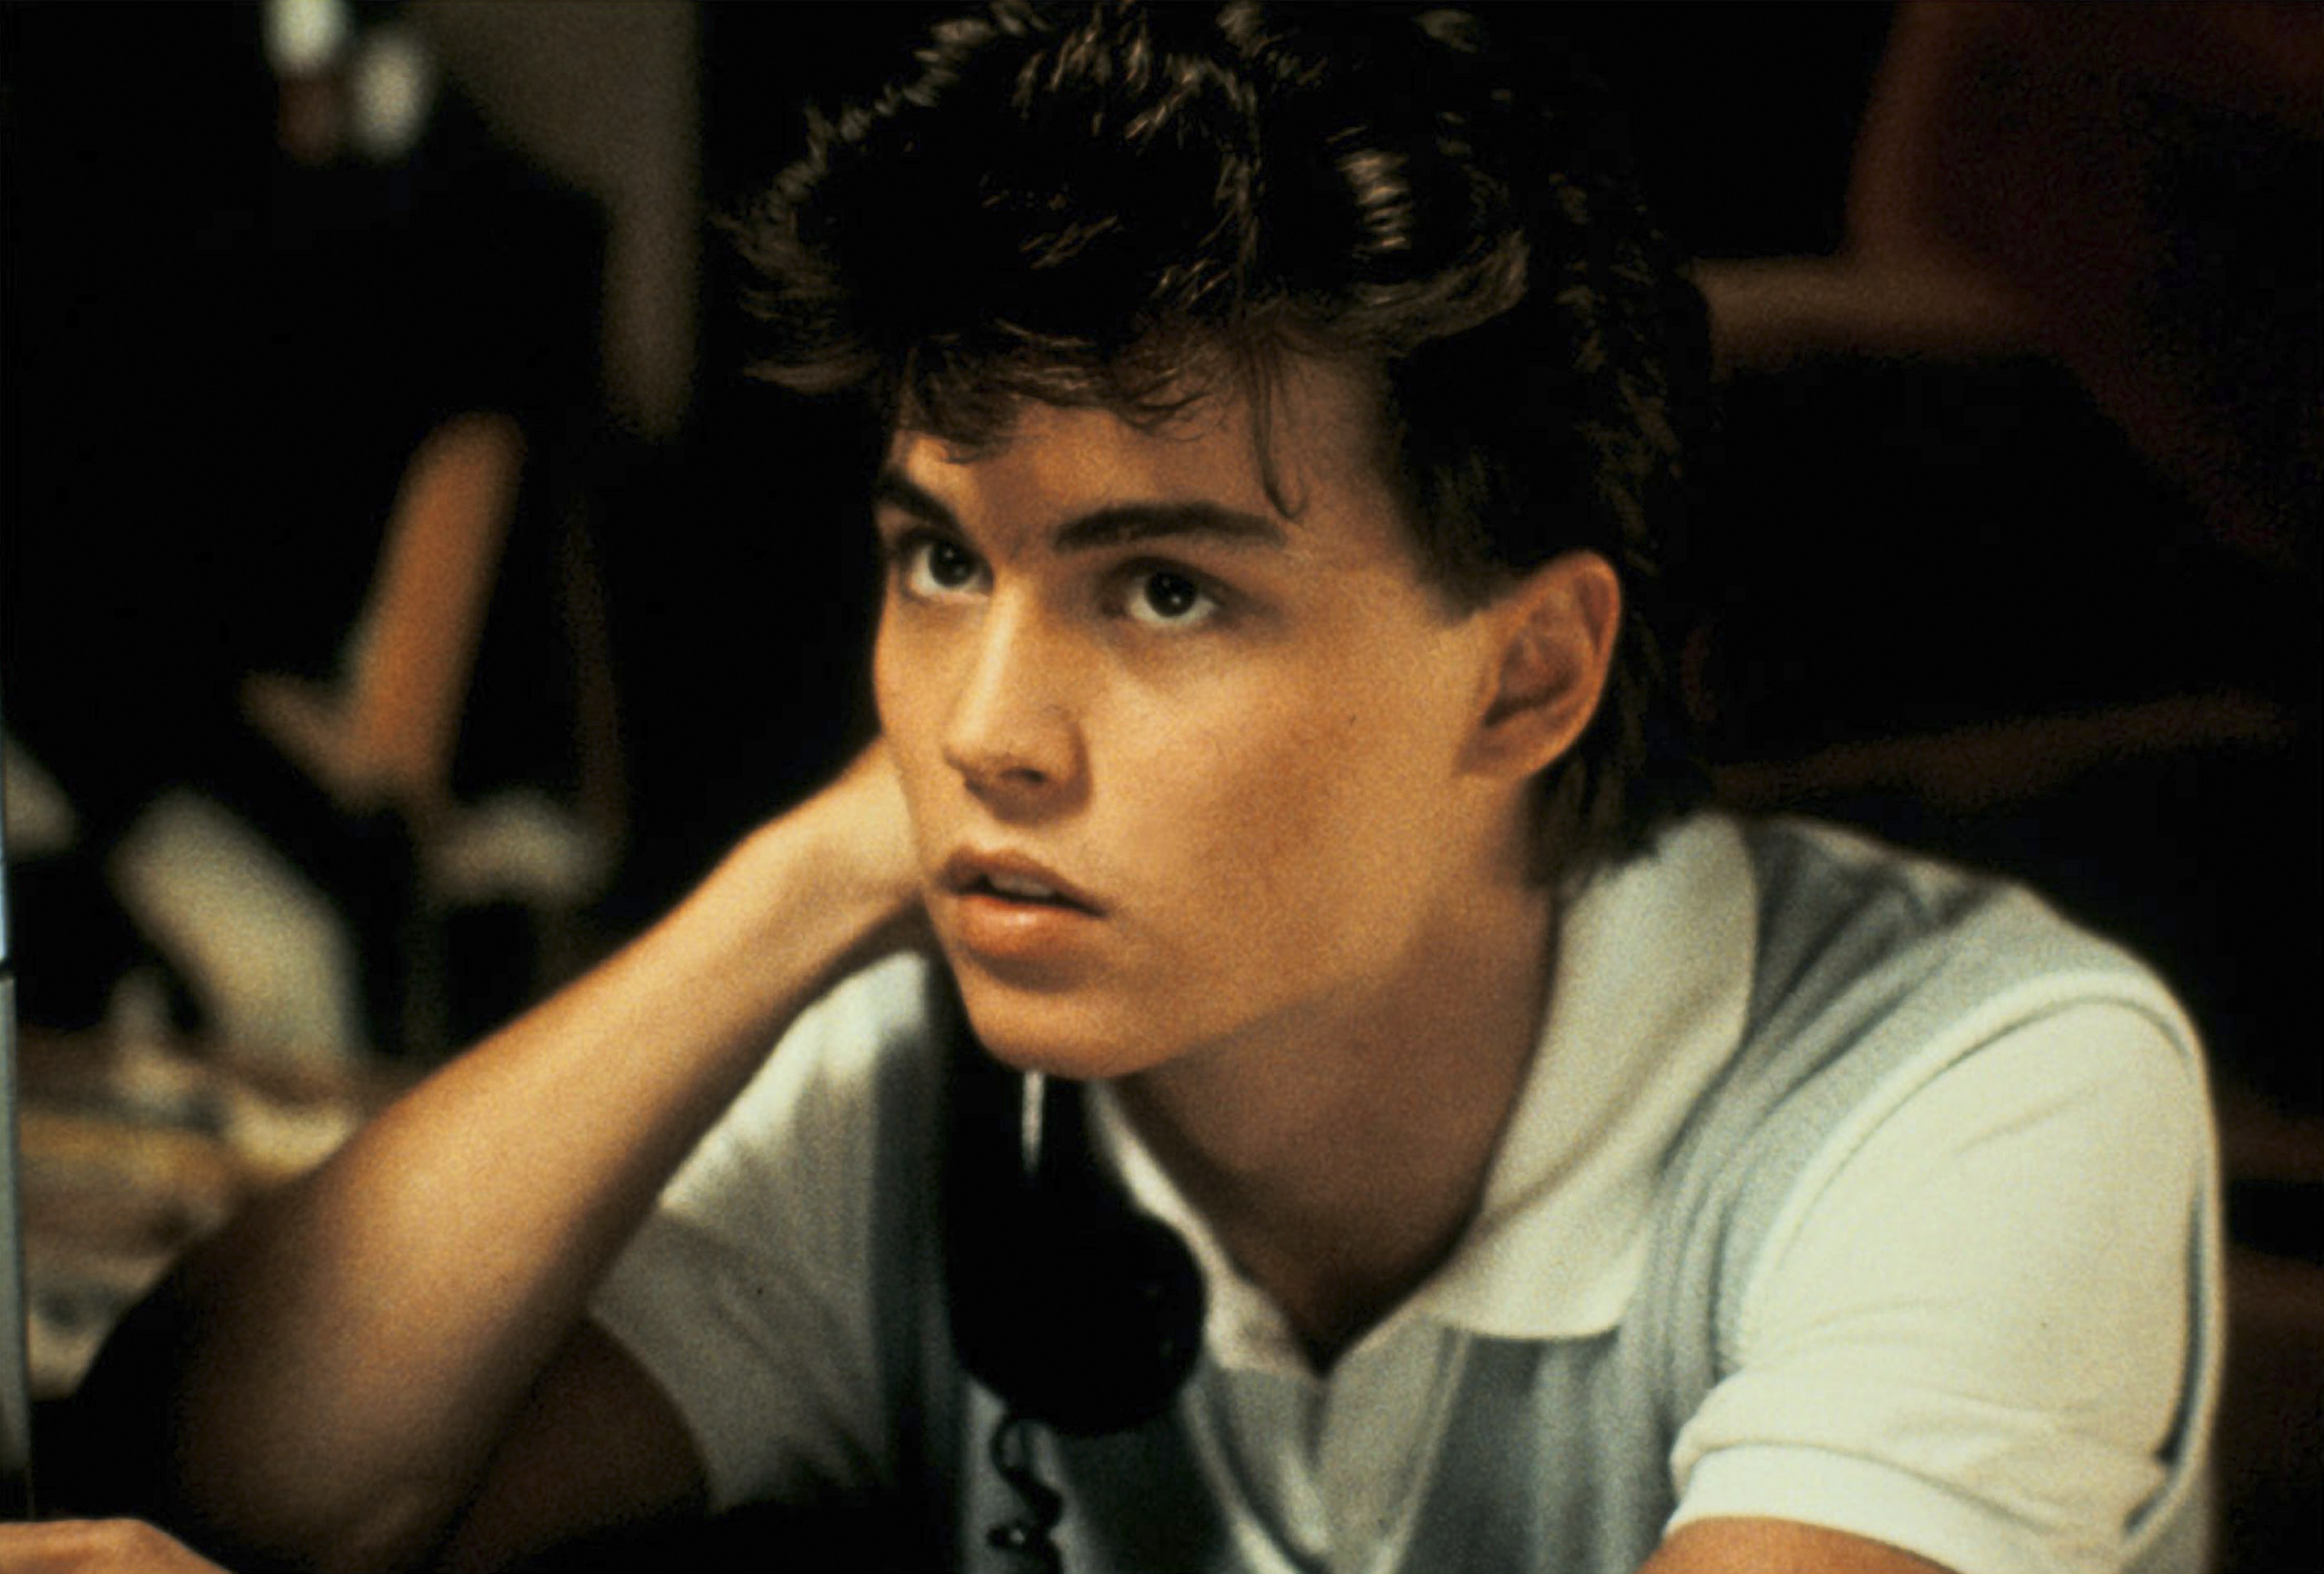 Johnny Depp's tribute to Wes Craven is making us misty-eyed